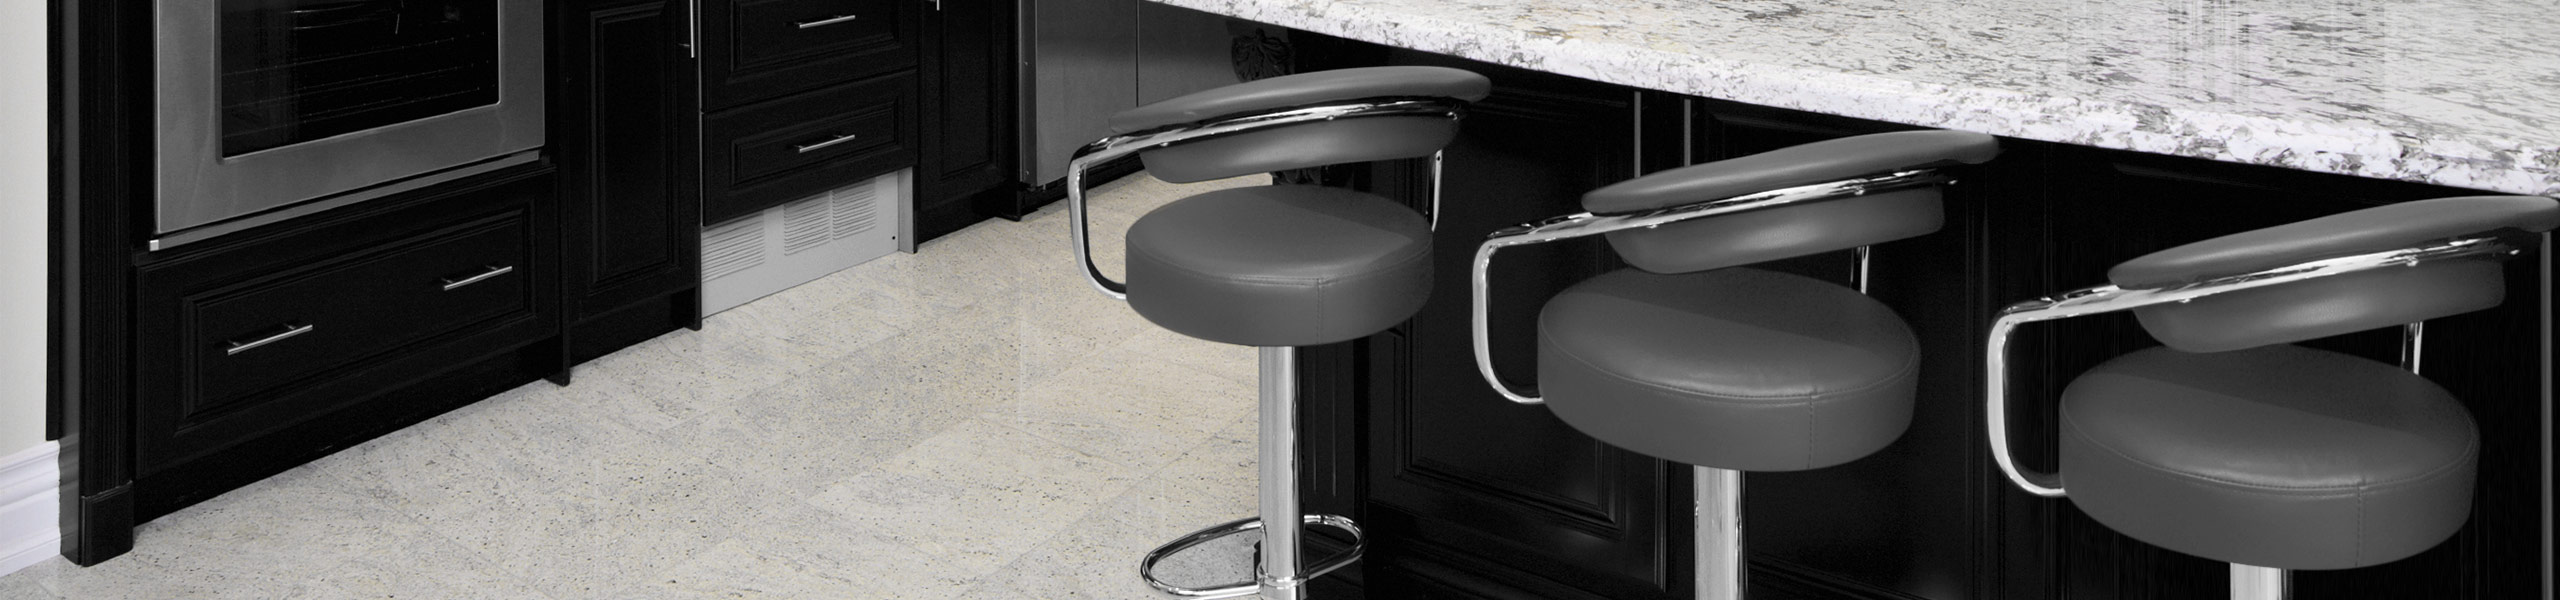 Pluto Bar Stool Grey Video Banner